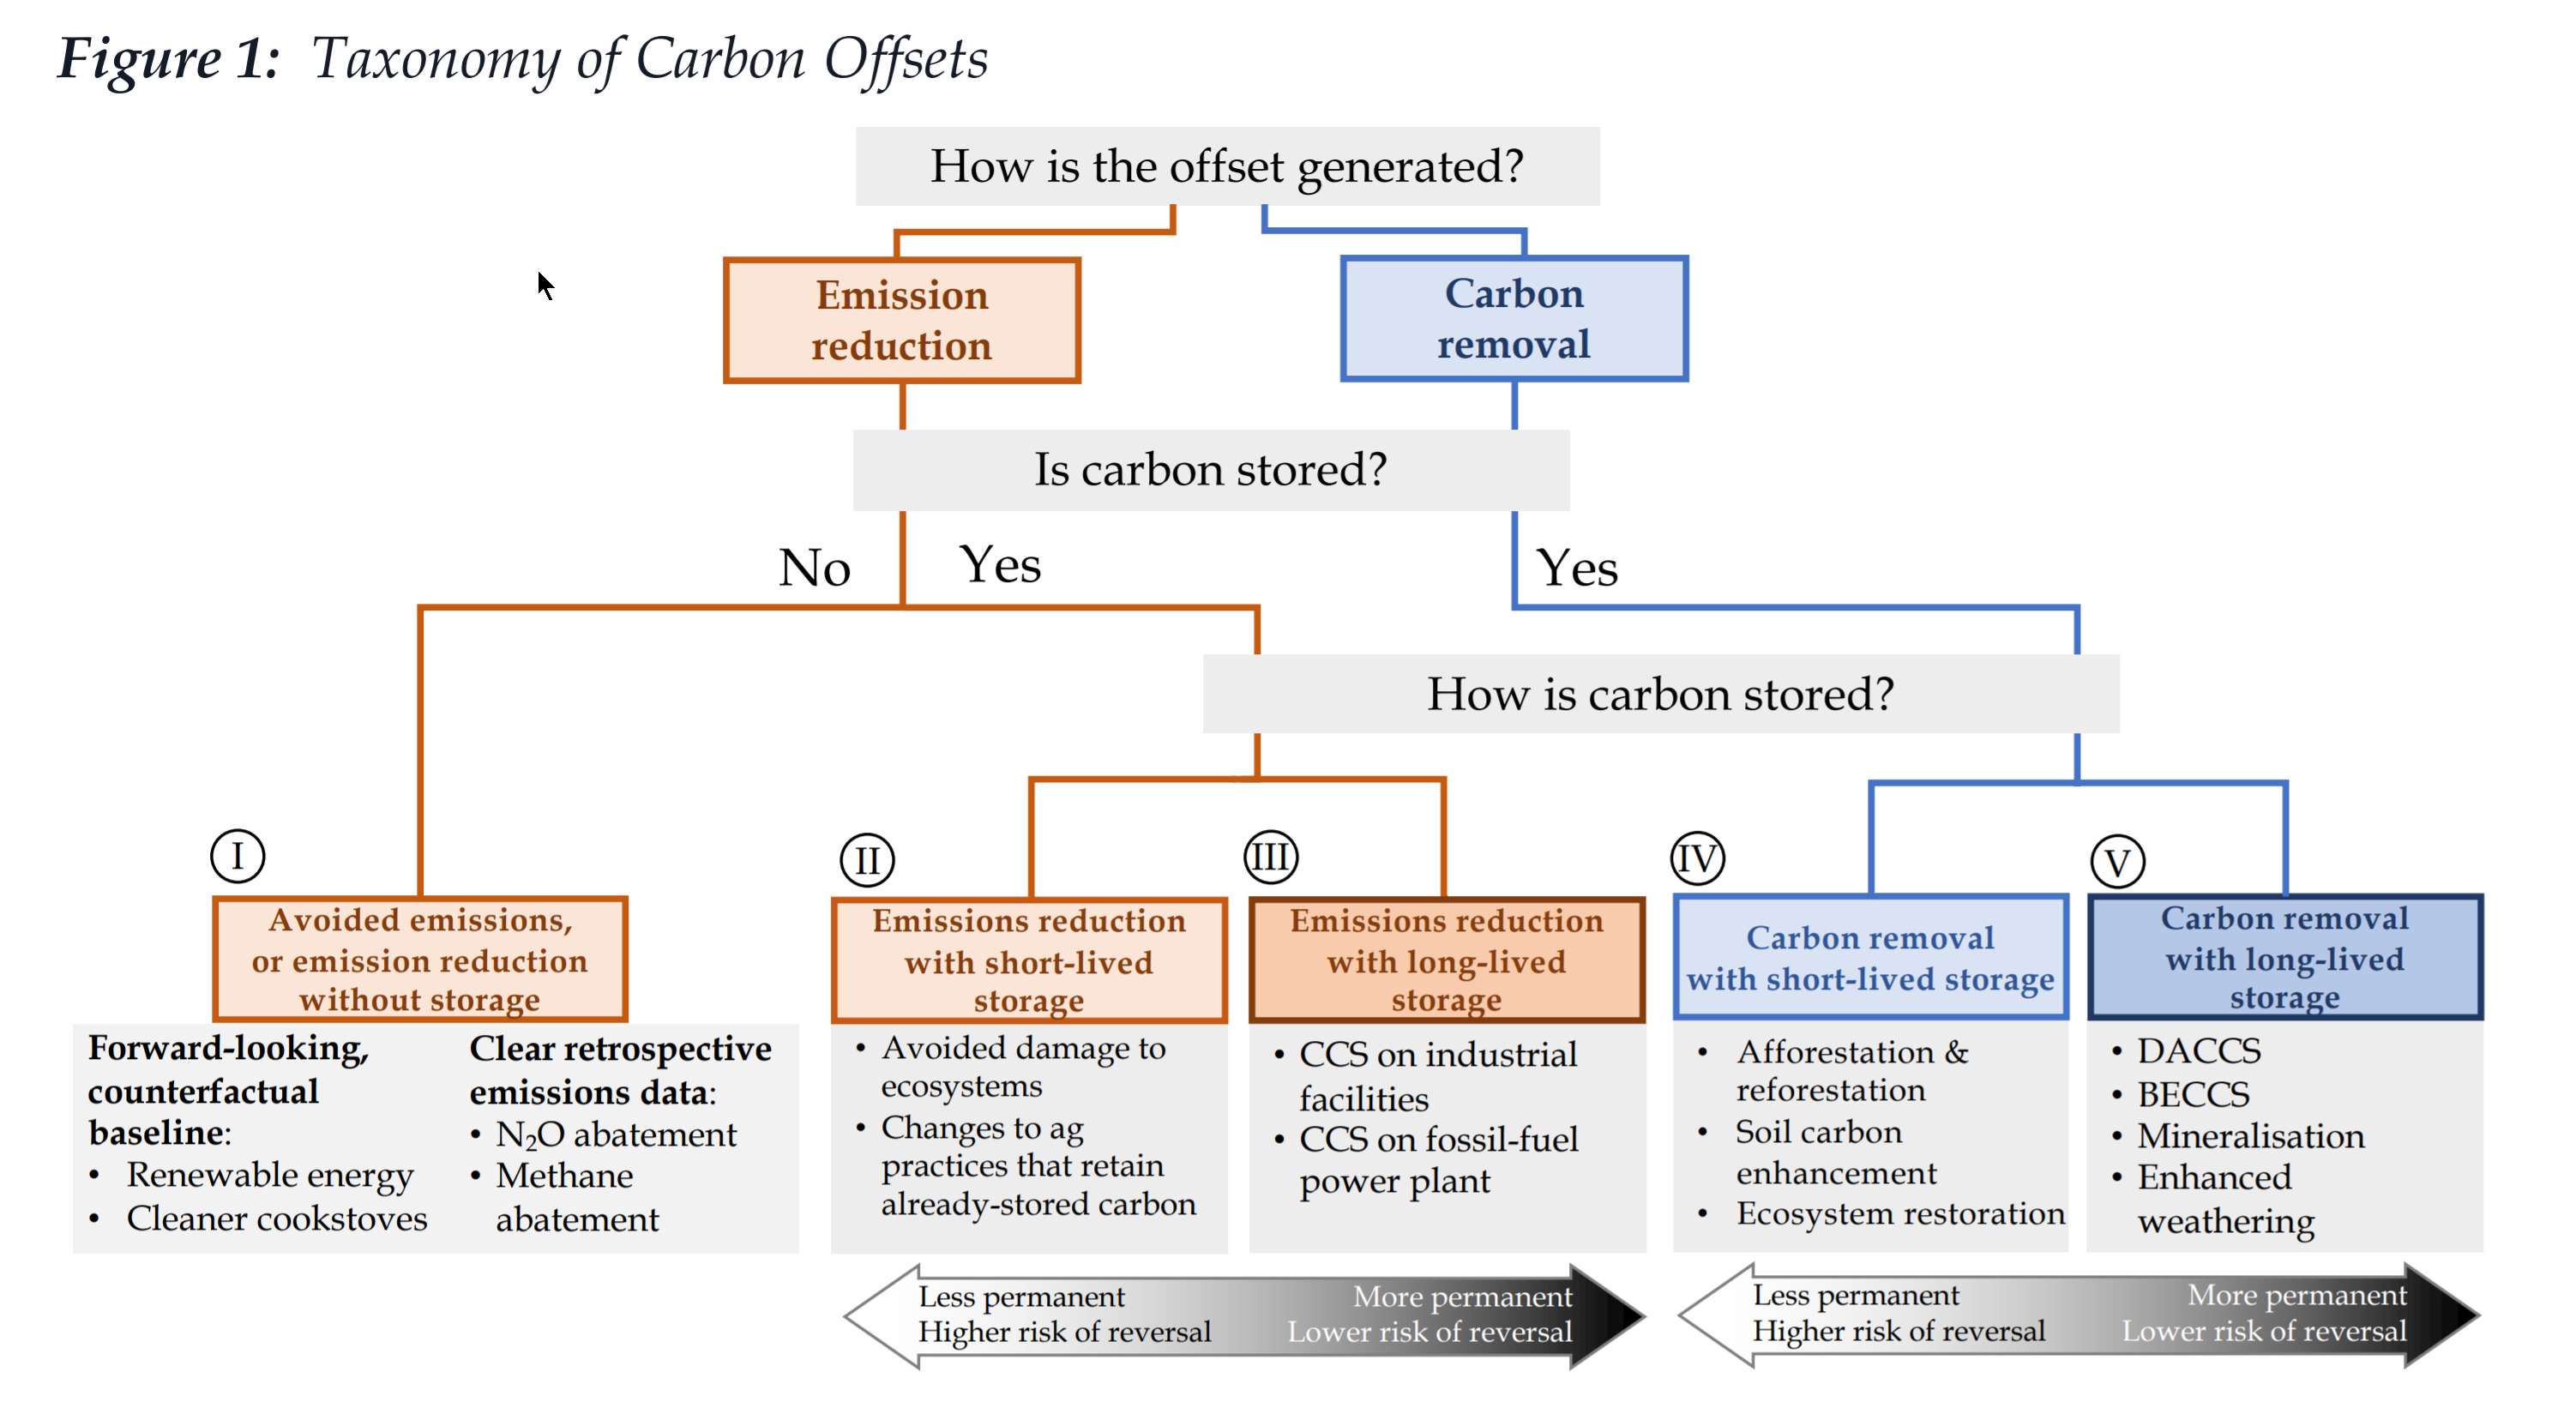 A hiearchy showing five forms of offsets, categorized as either emissions reductions or carbon removals.